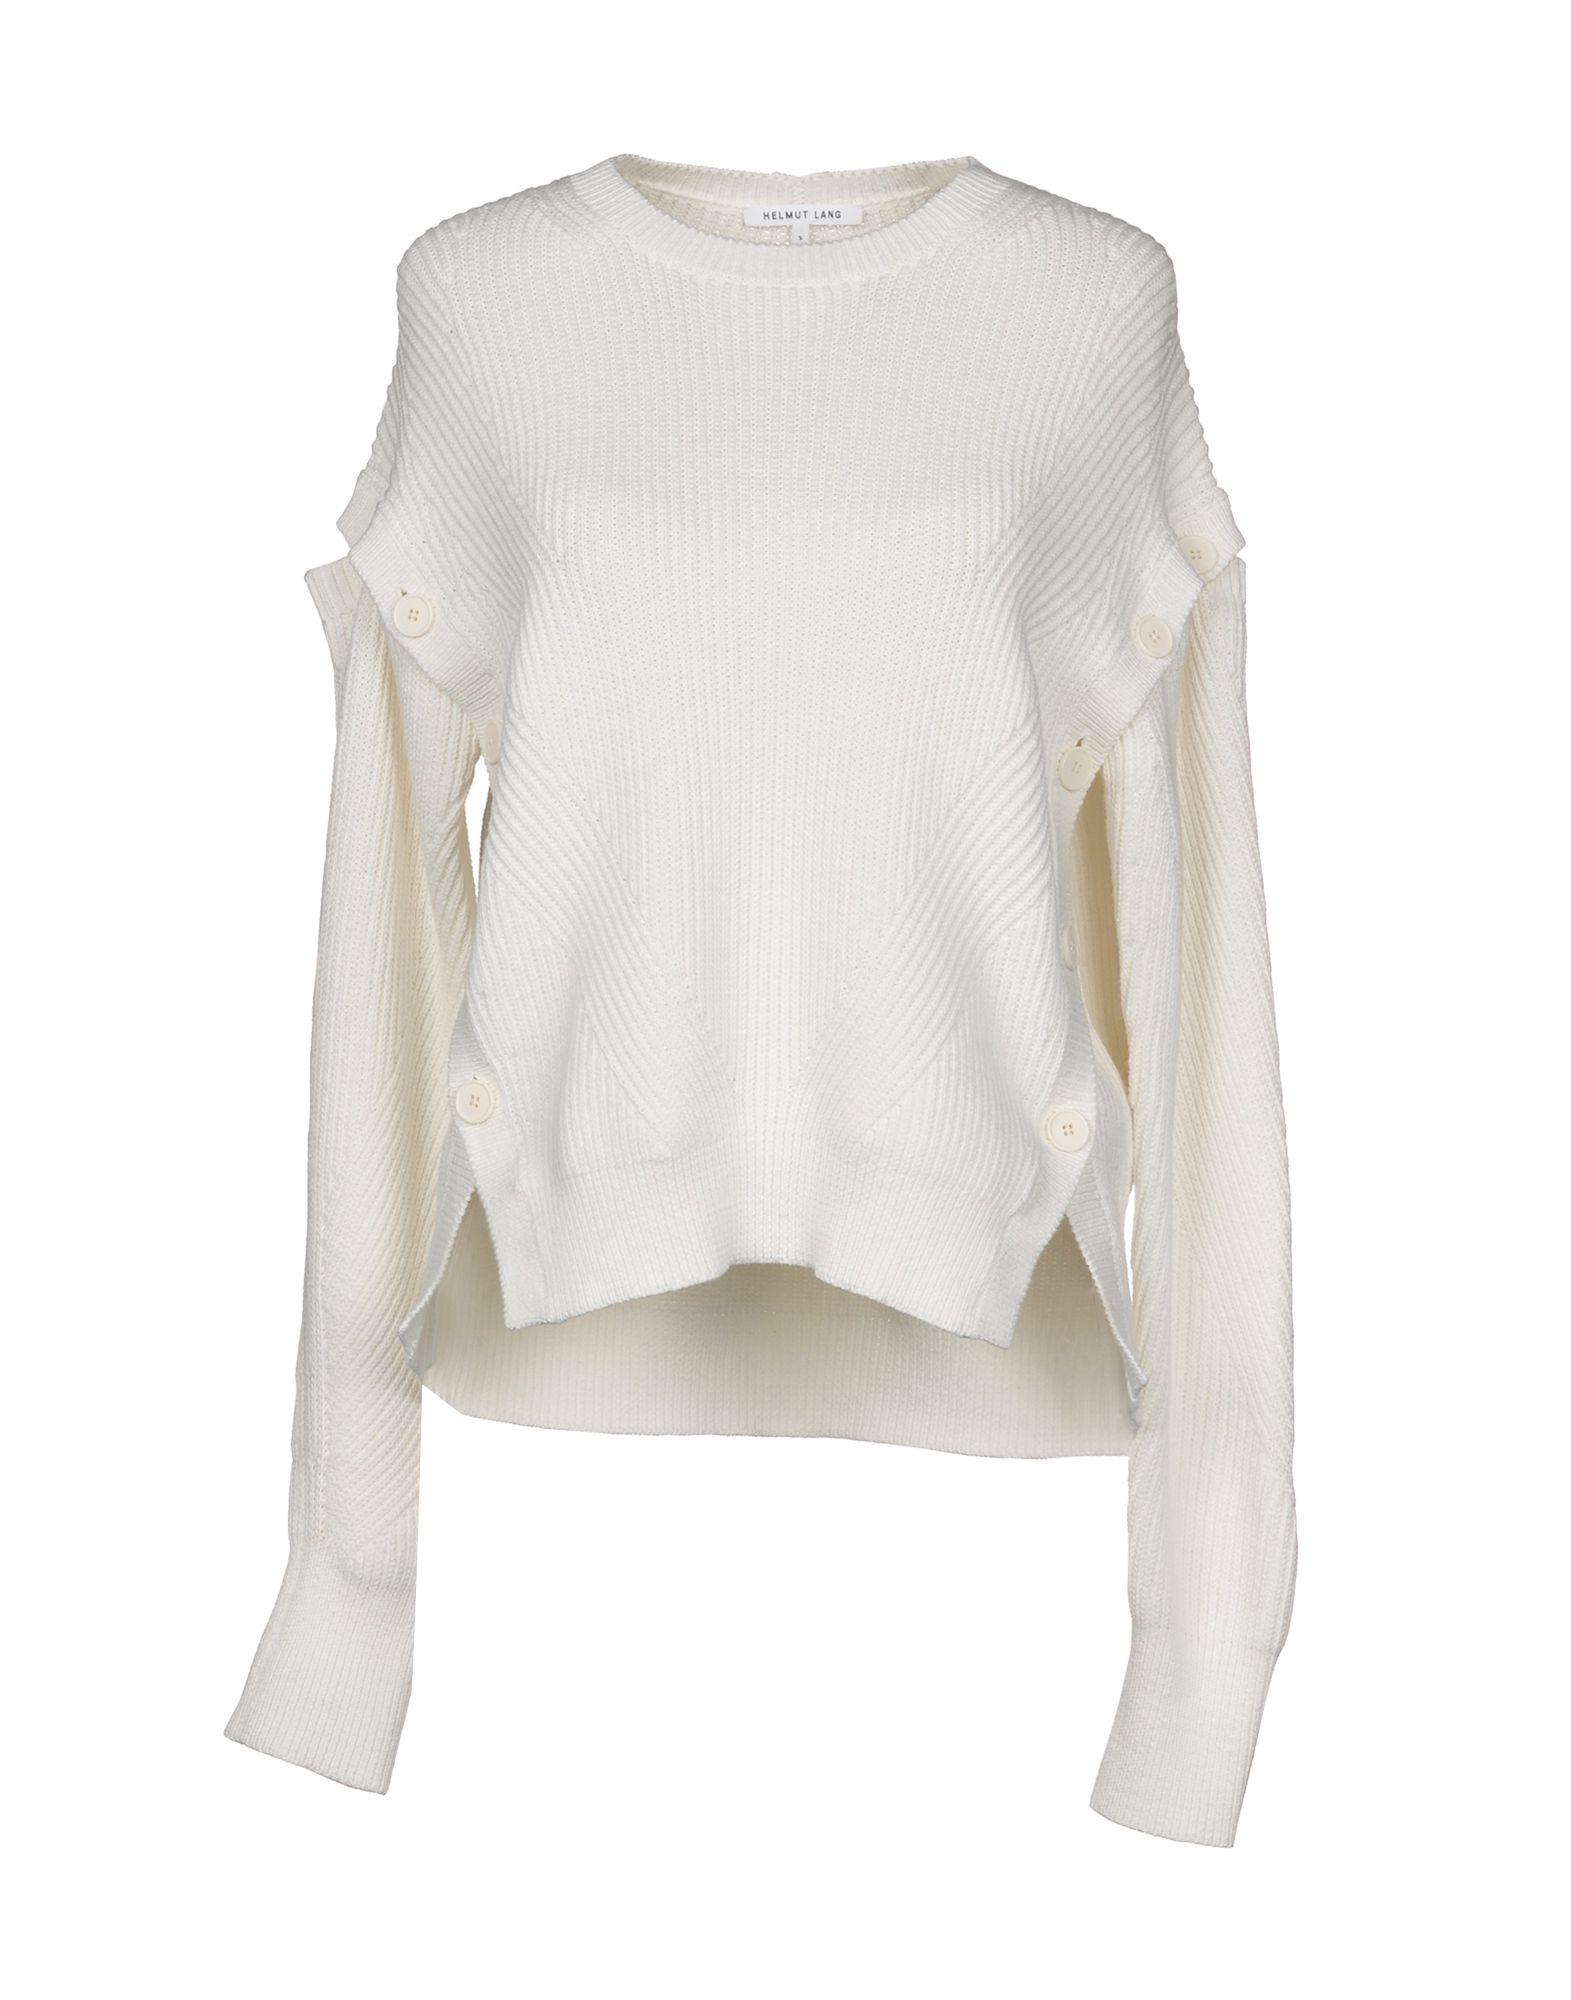 Helmut Lang Sweater In White